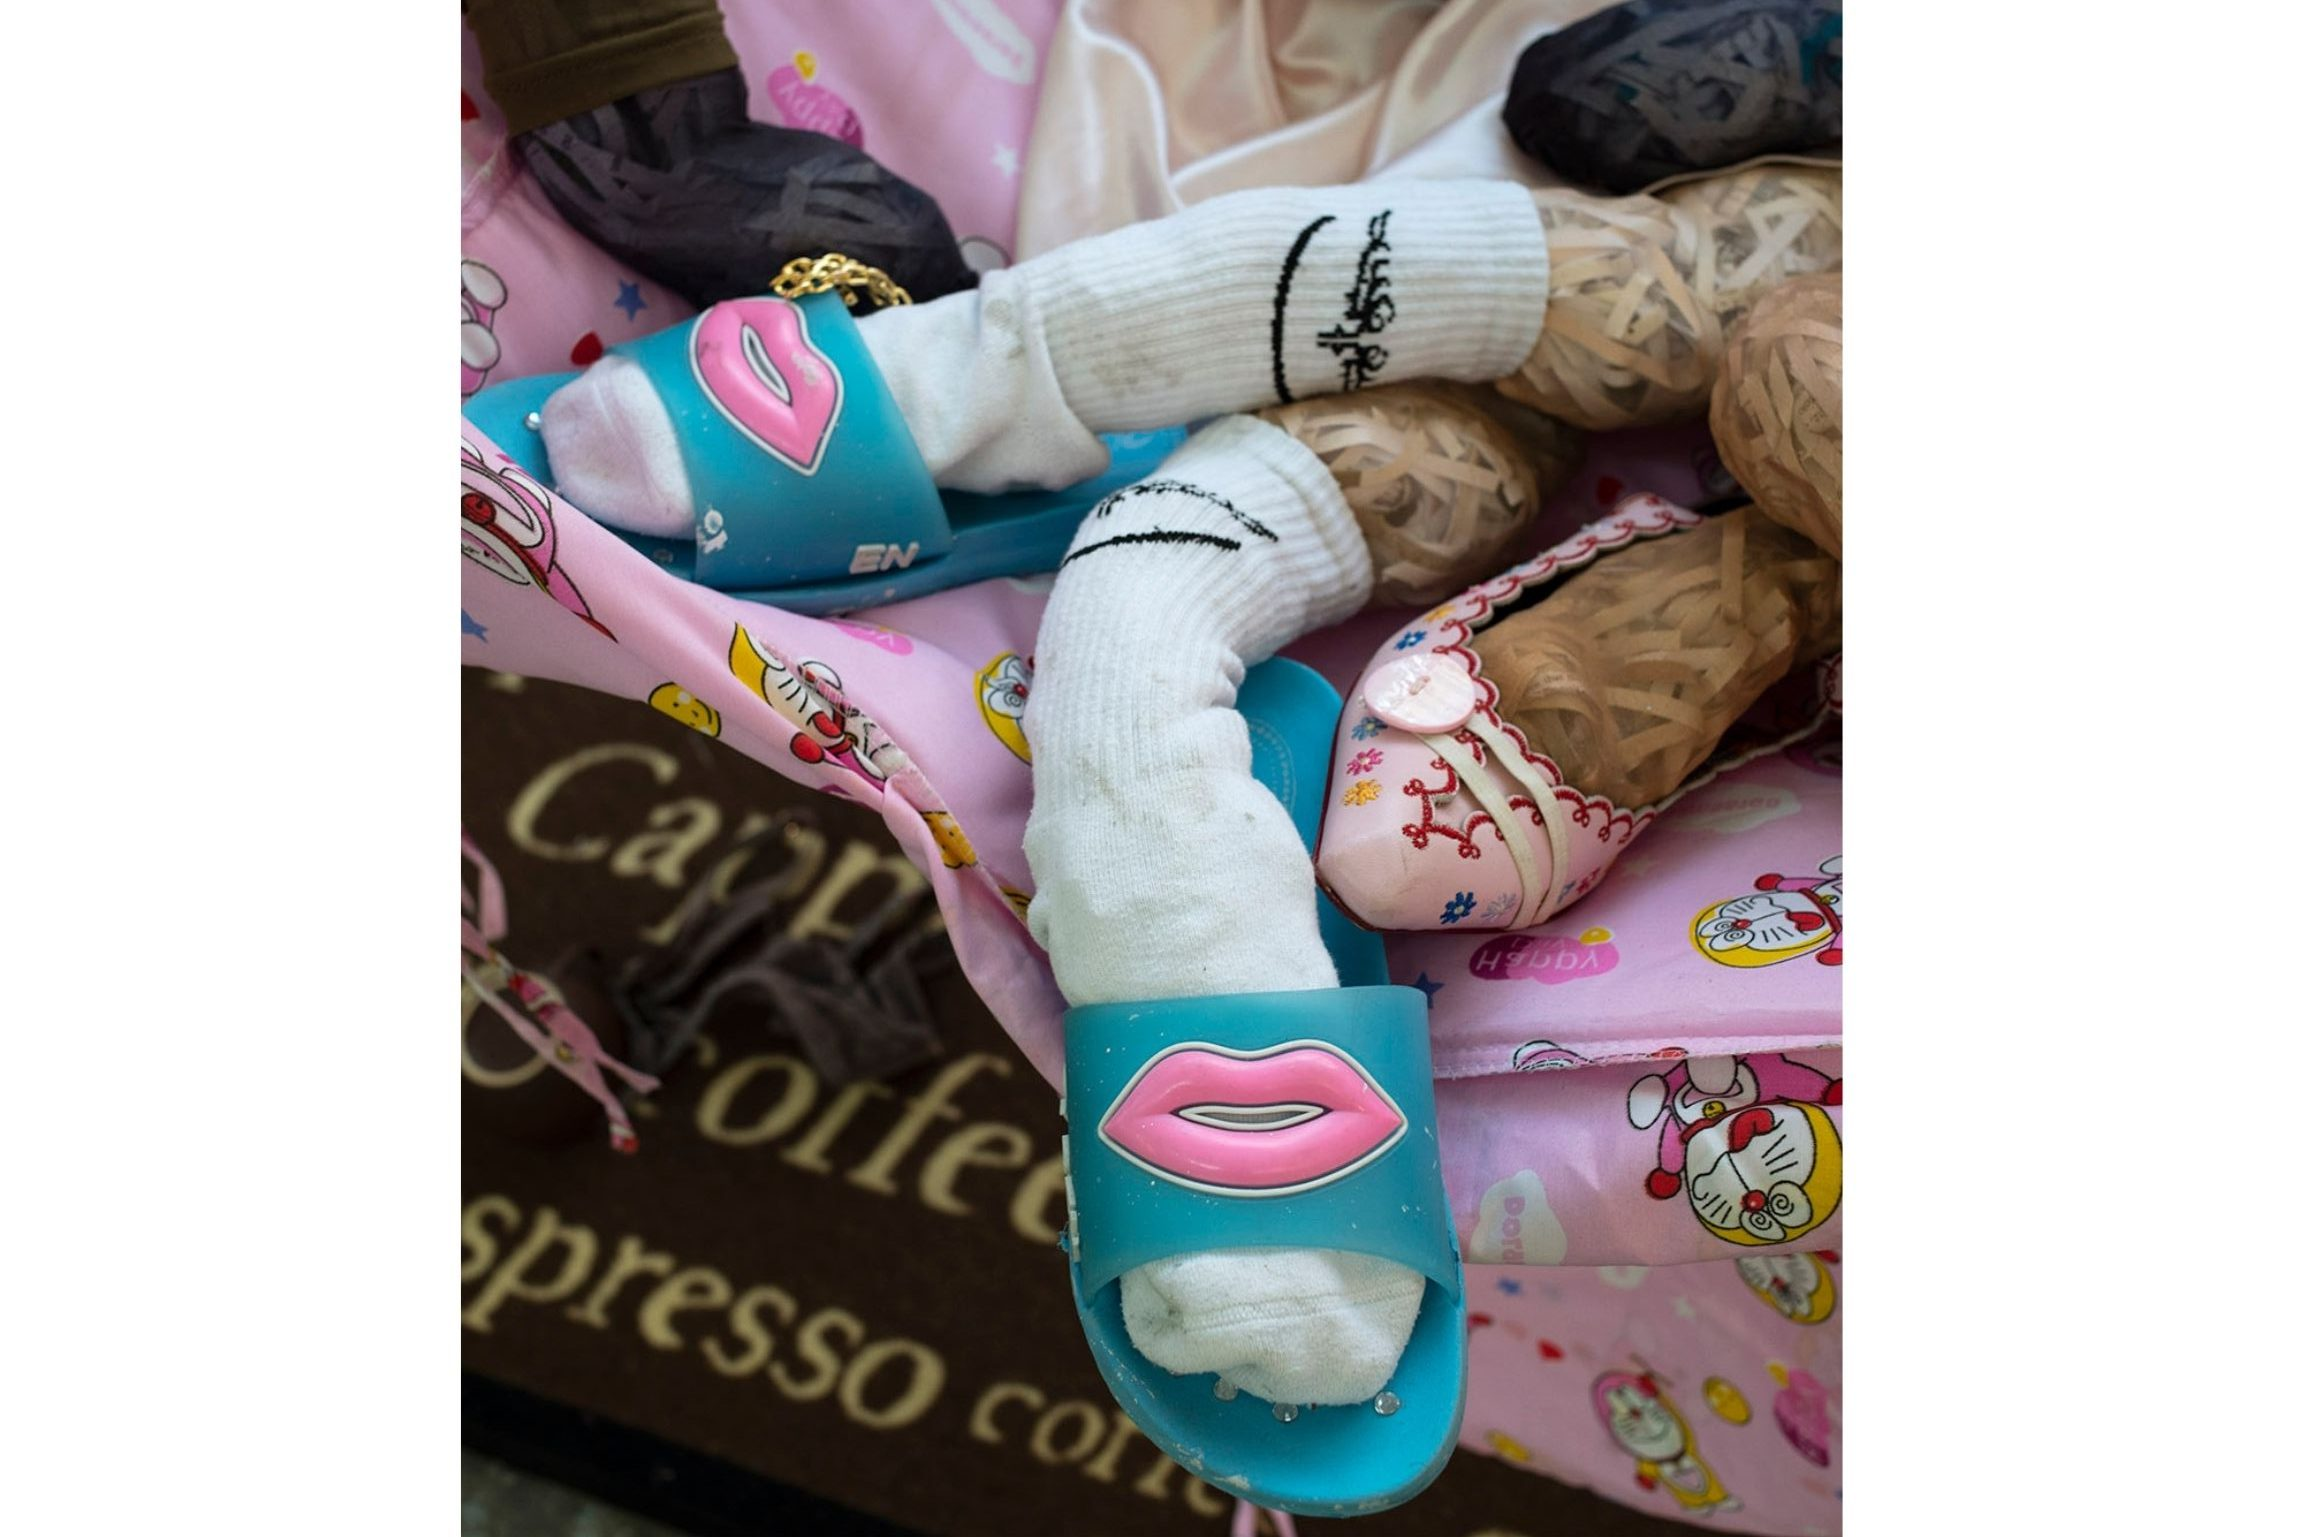 """Photograph of """"legs,"""" which are pantyhose stuffed with shreds of paper, wearing ankle socks and blue sandals with a pink graphic of lips on them."""